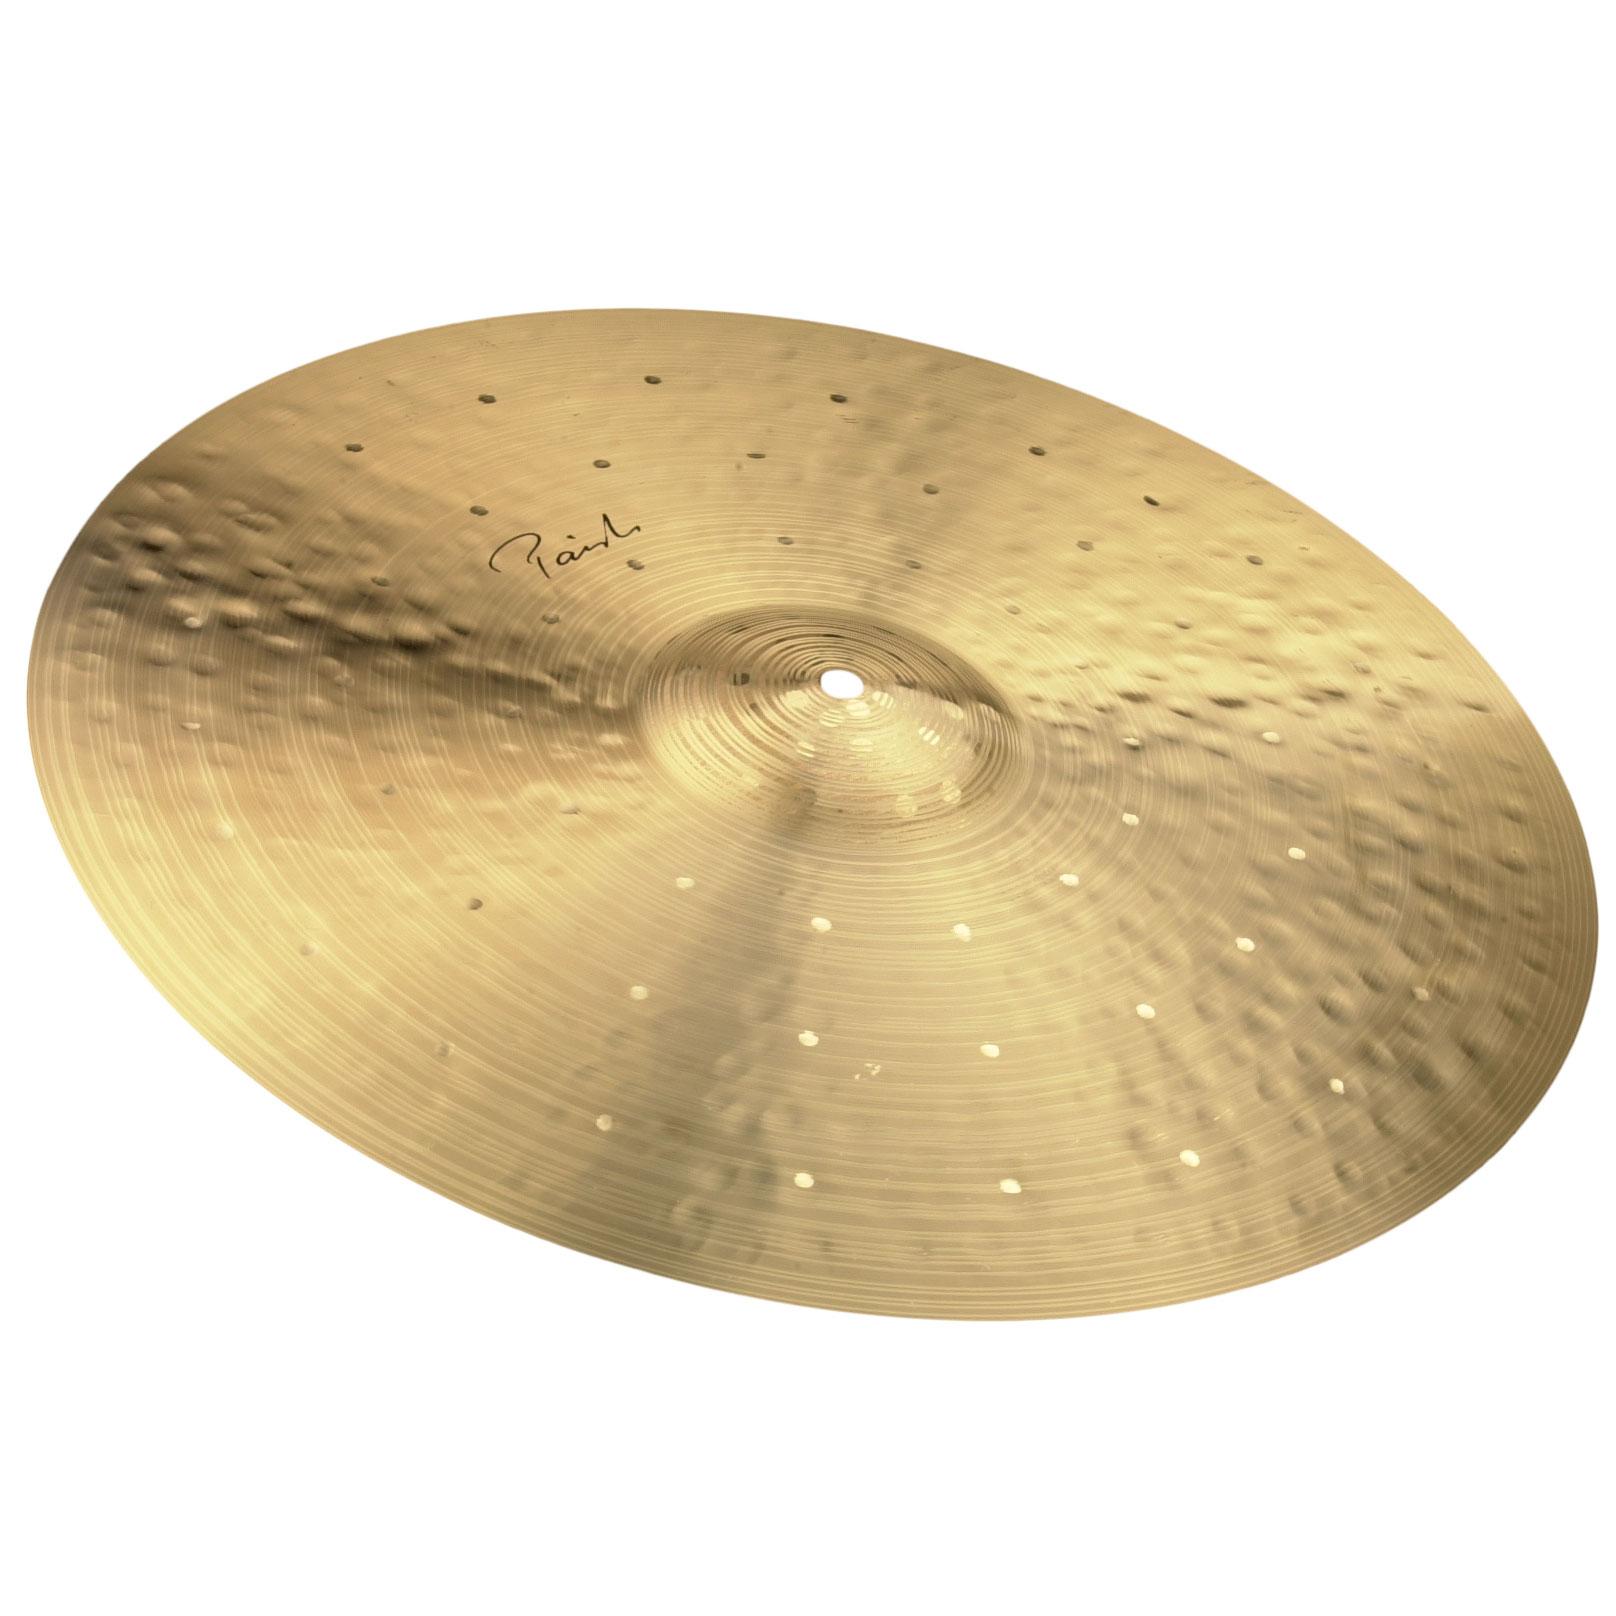 "Paiste 22"" Signature Traditional Light Ride Cymbal"